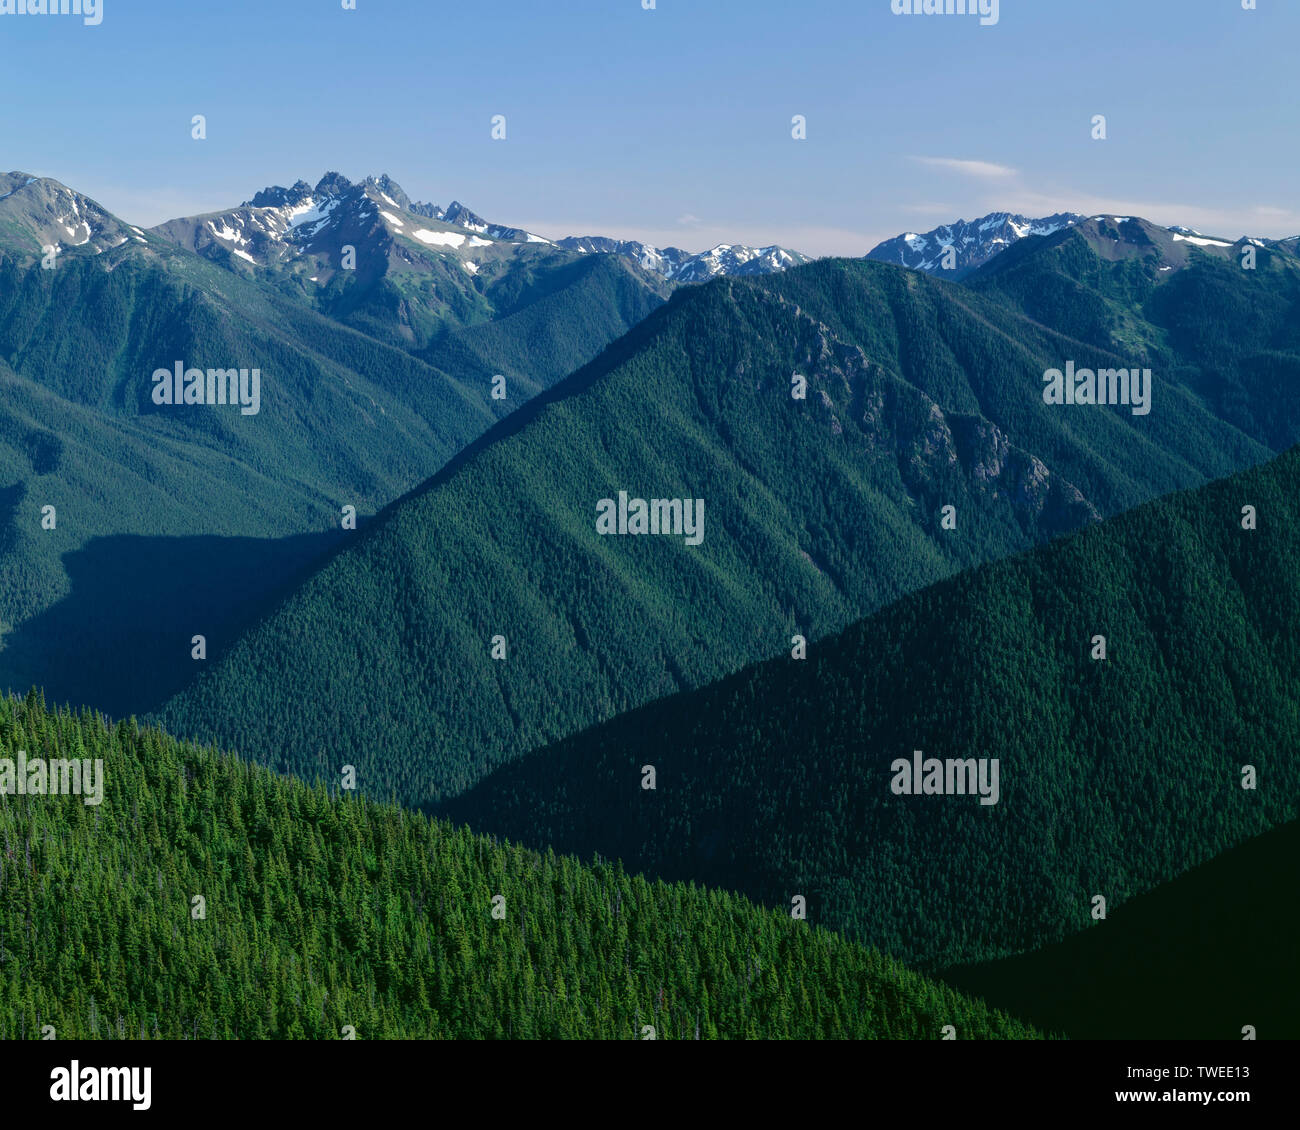 USA, Washington, Olympic National Park, Mt. Deception (top left) rises above densely forested ridges and valleys; view south from Deer Park. - Stock Image